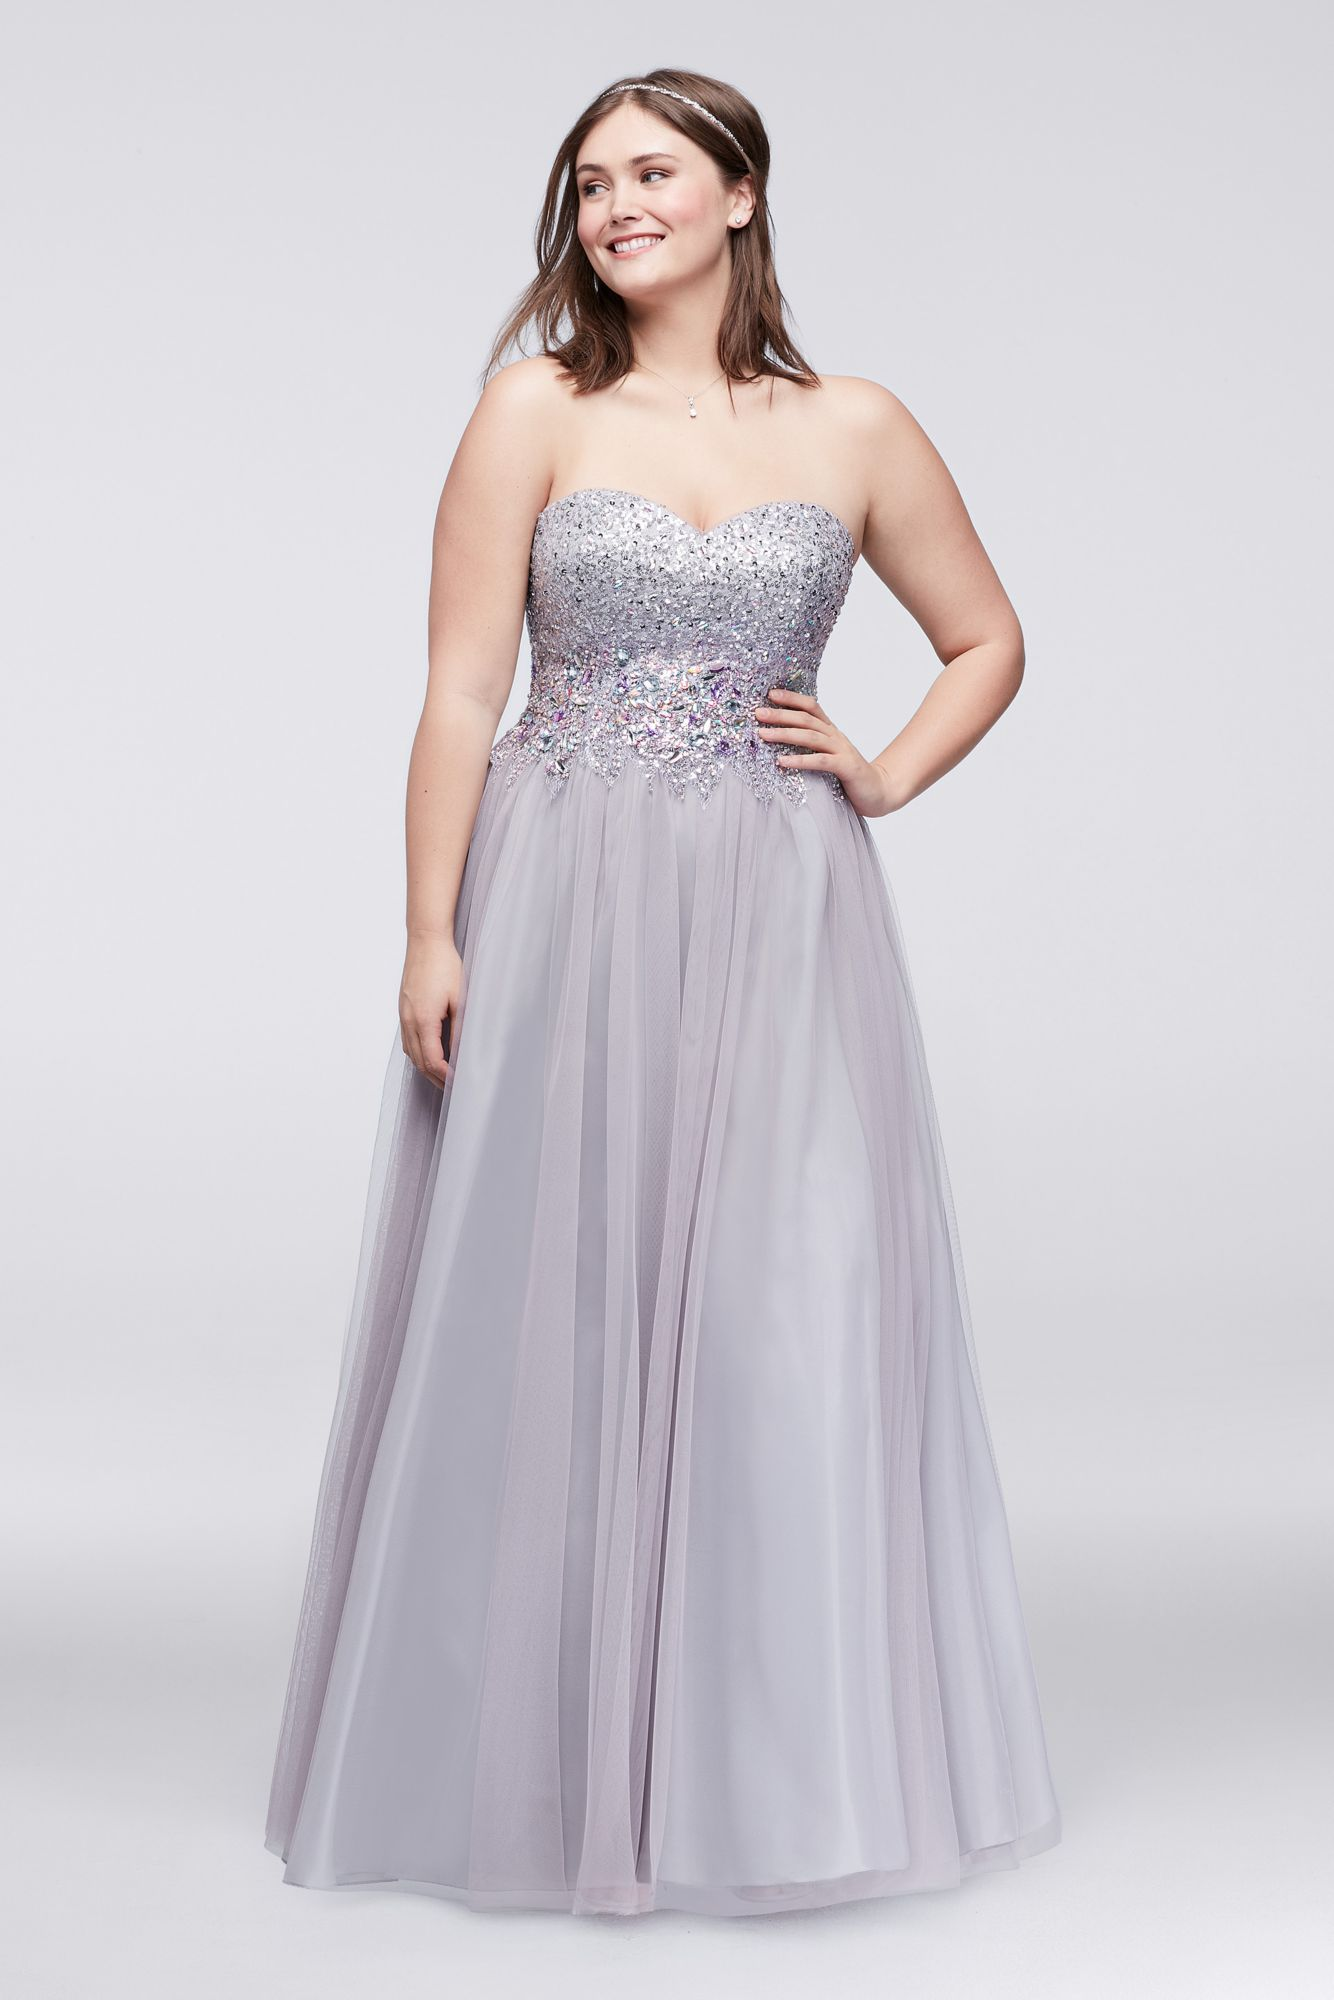 New style plus size strapless beaded dw tulle ball gown dress